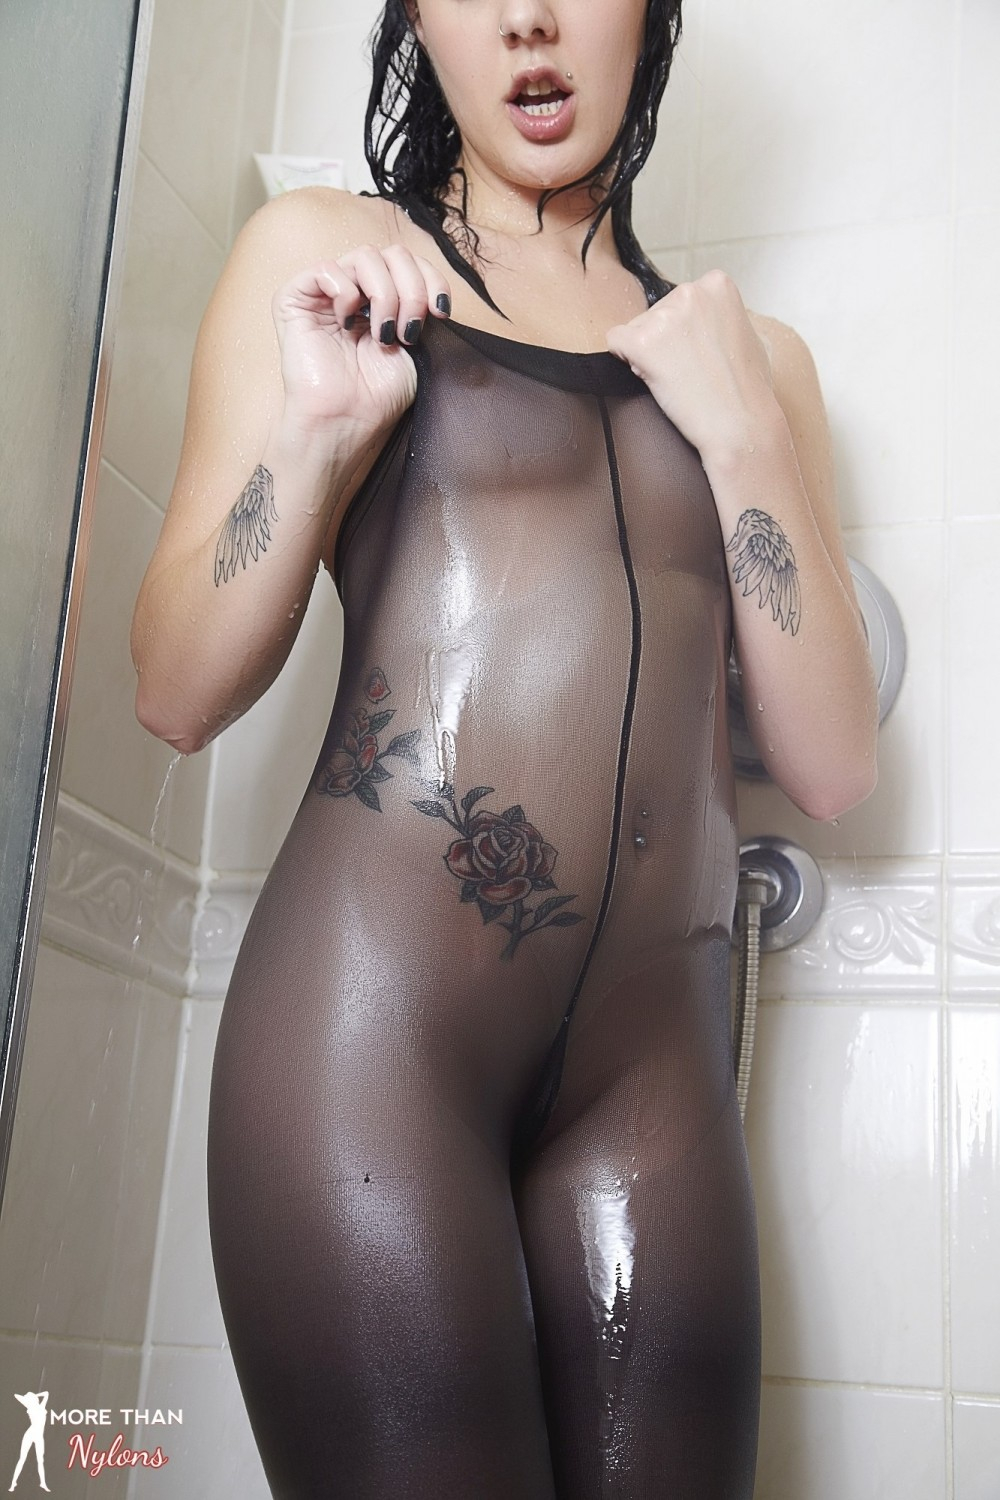 Zoe More Wet Black Pantyhose in the Shower